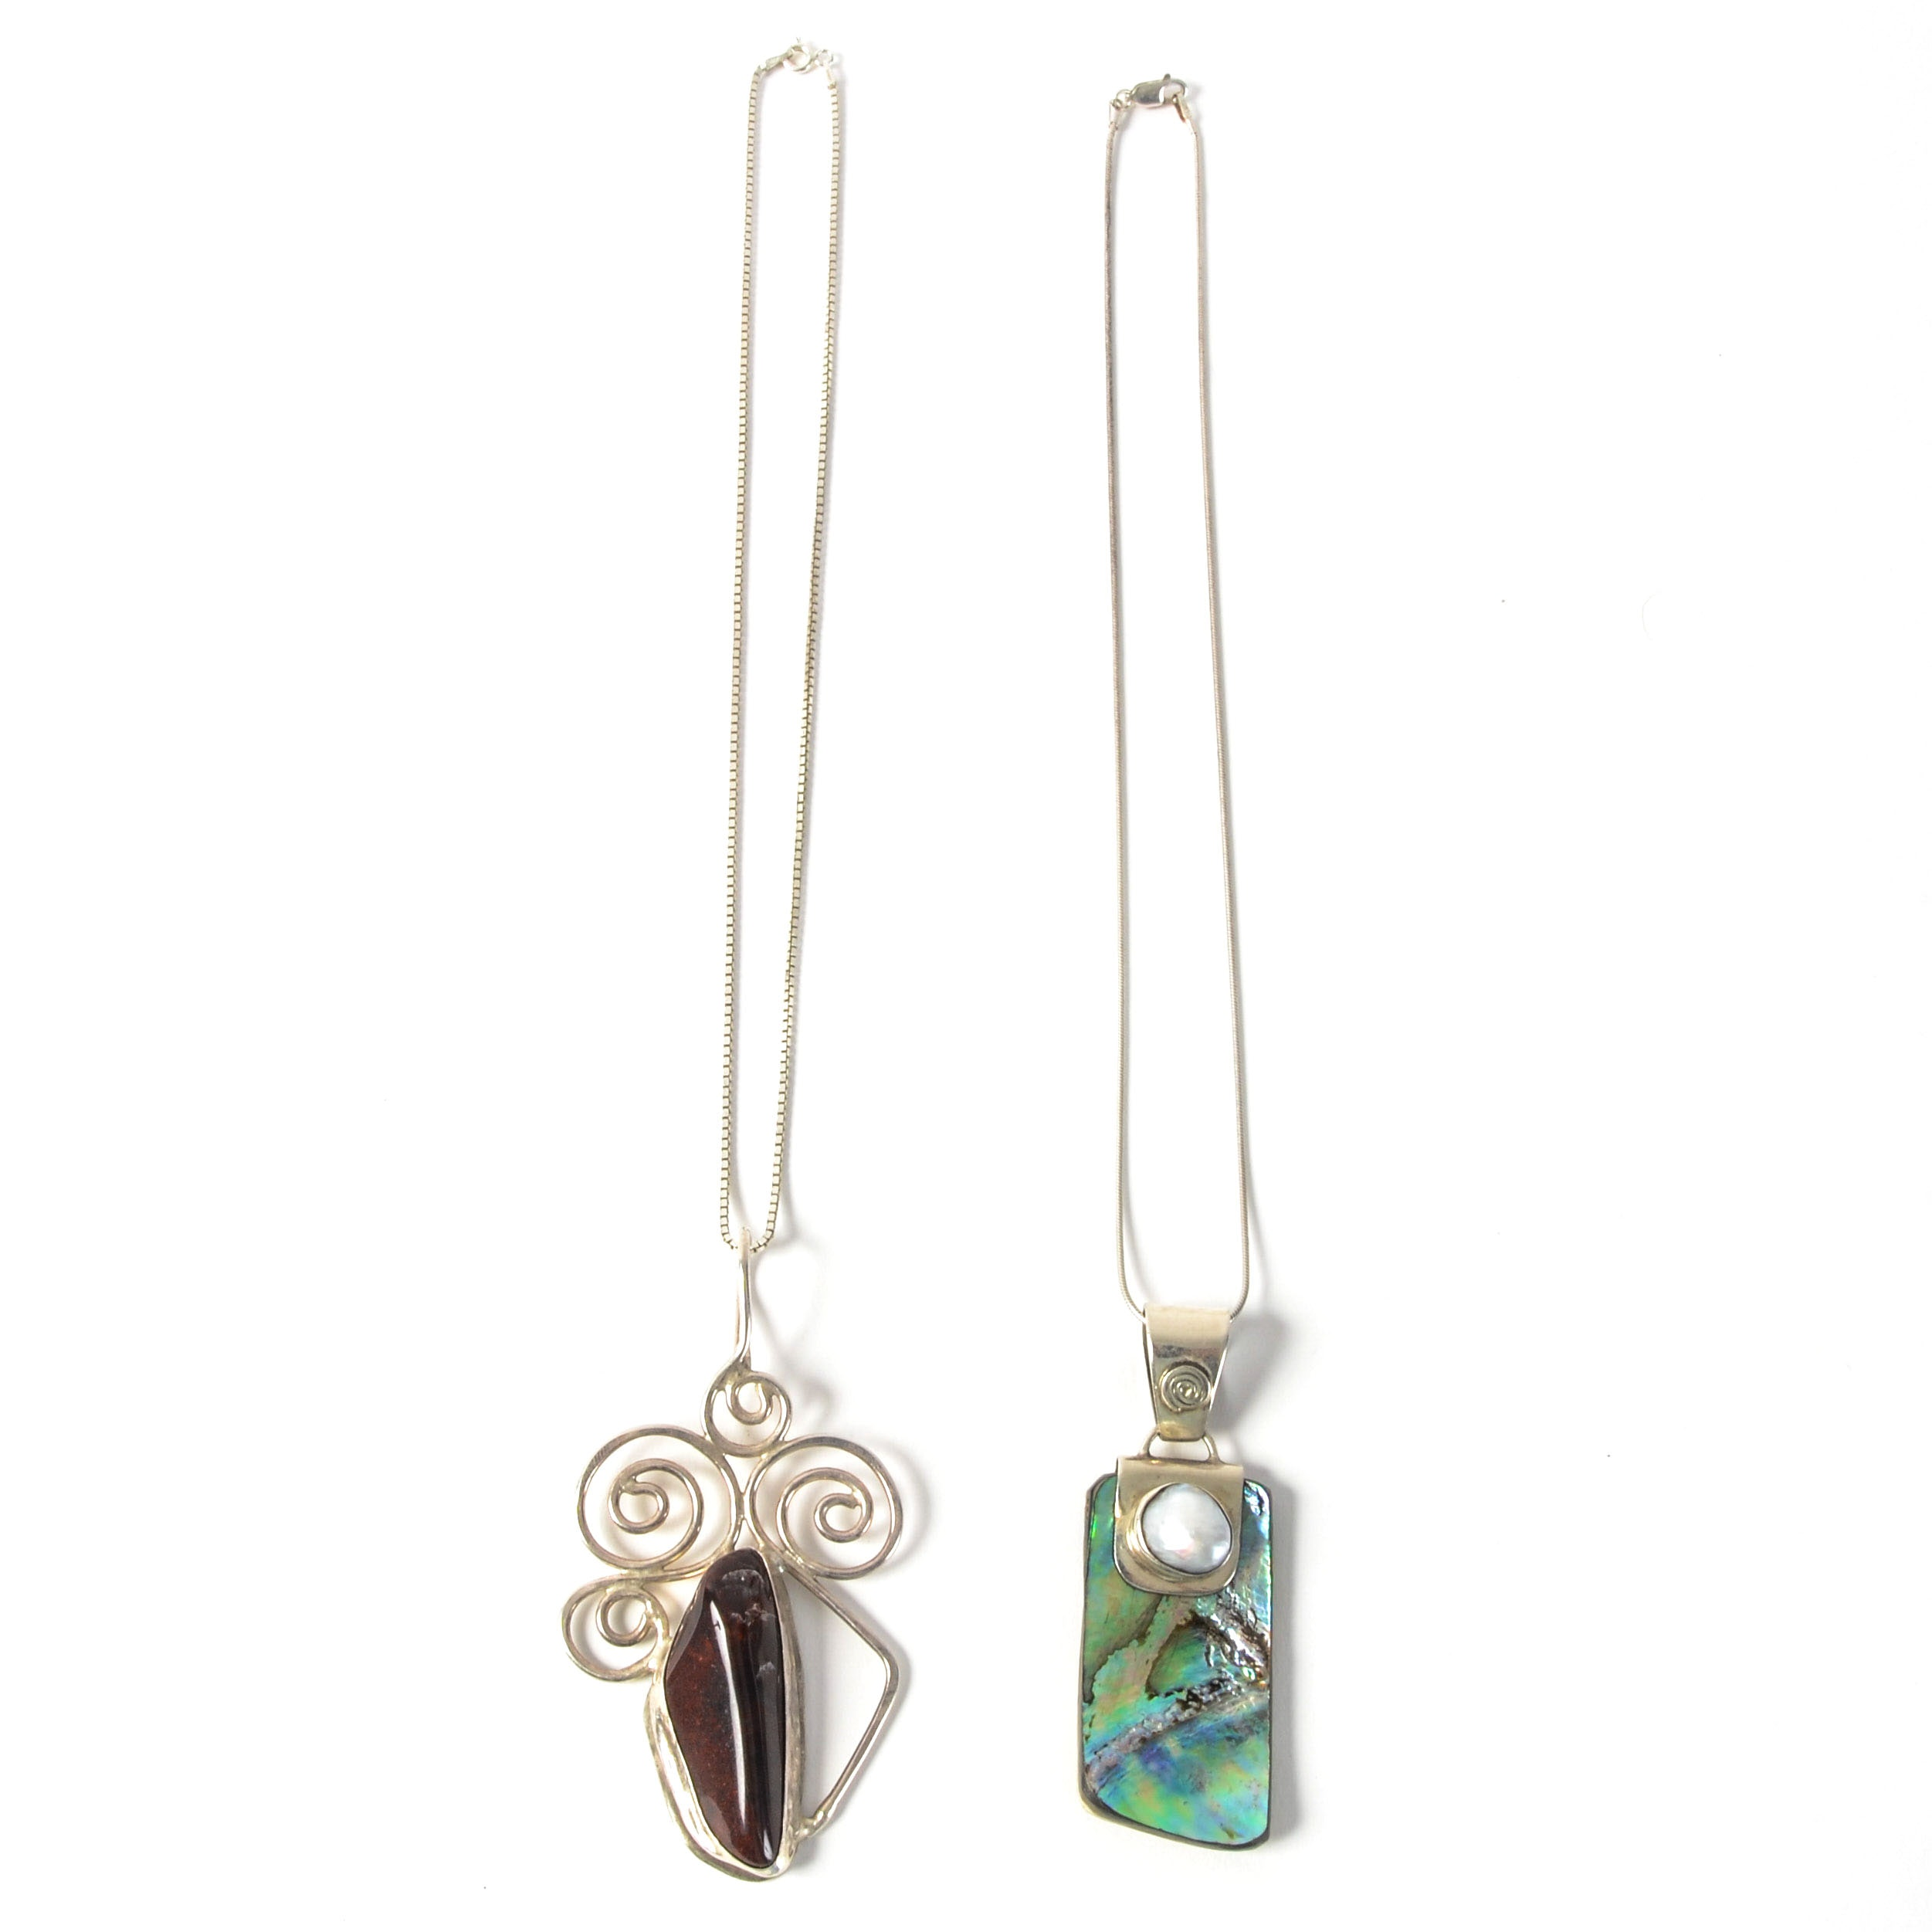 Pair of Sterling and Stone Embellished Necklaces